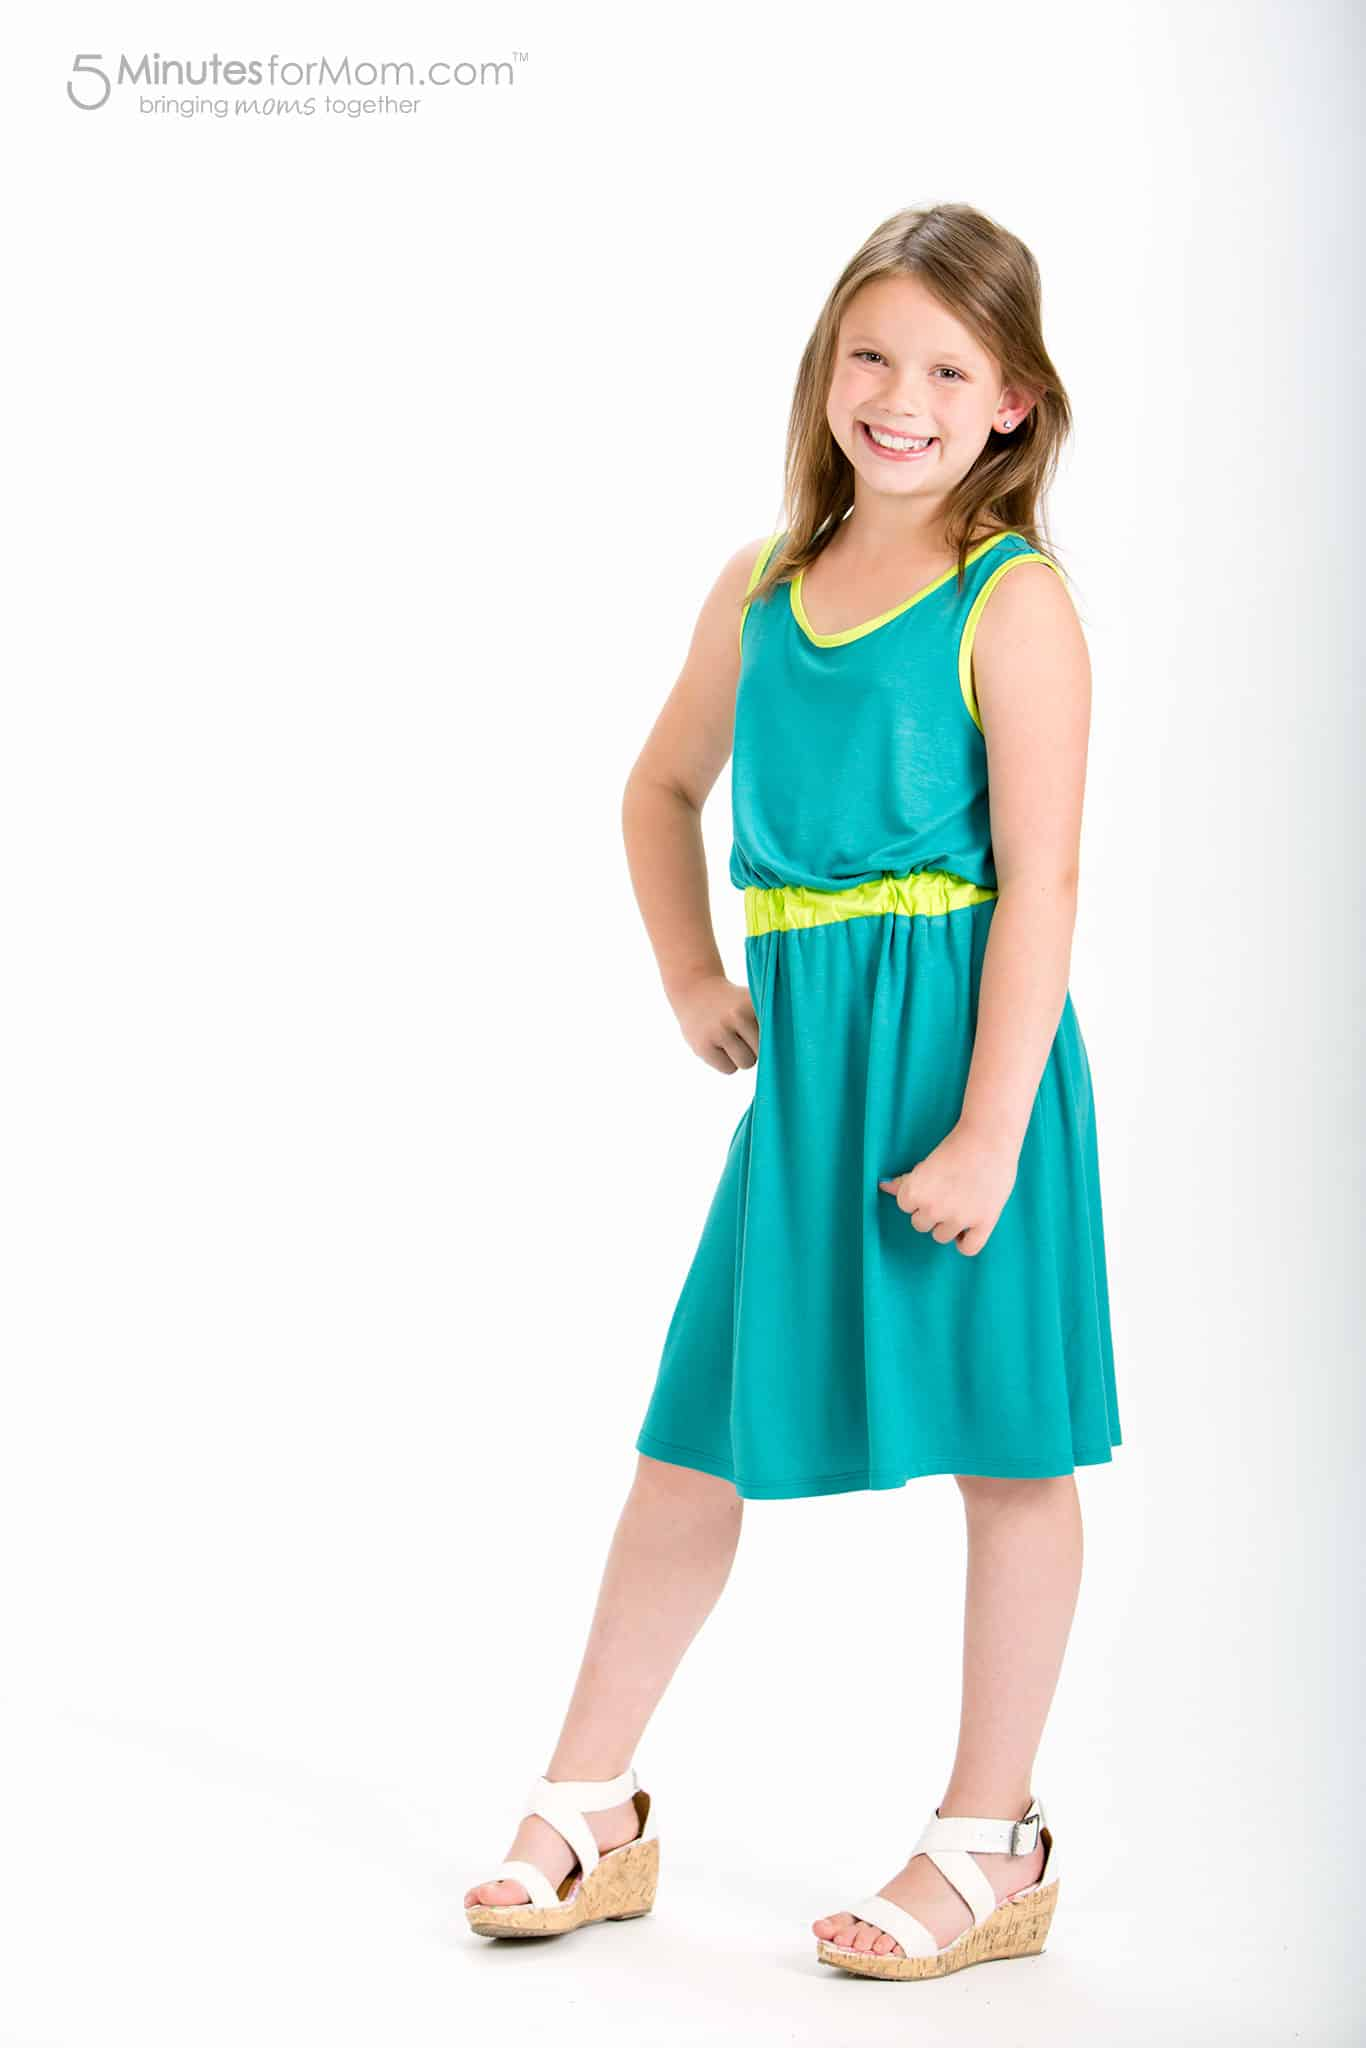 Evelyn Alex - Clothes for Tween Girls - 5 Minutes for Mom